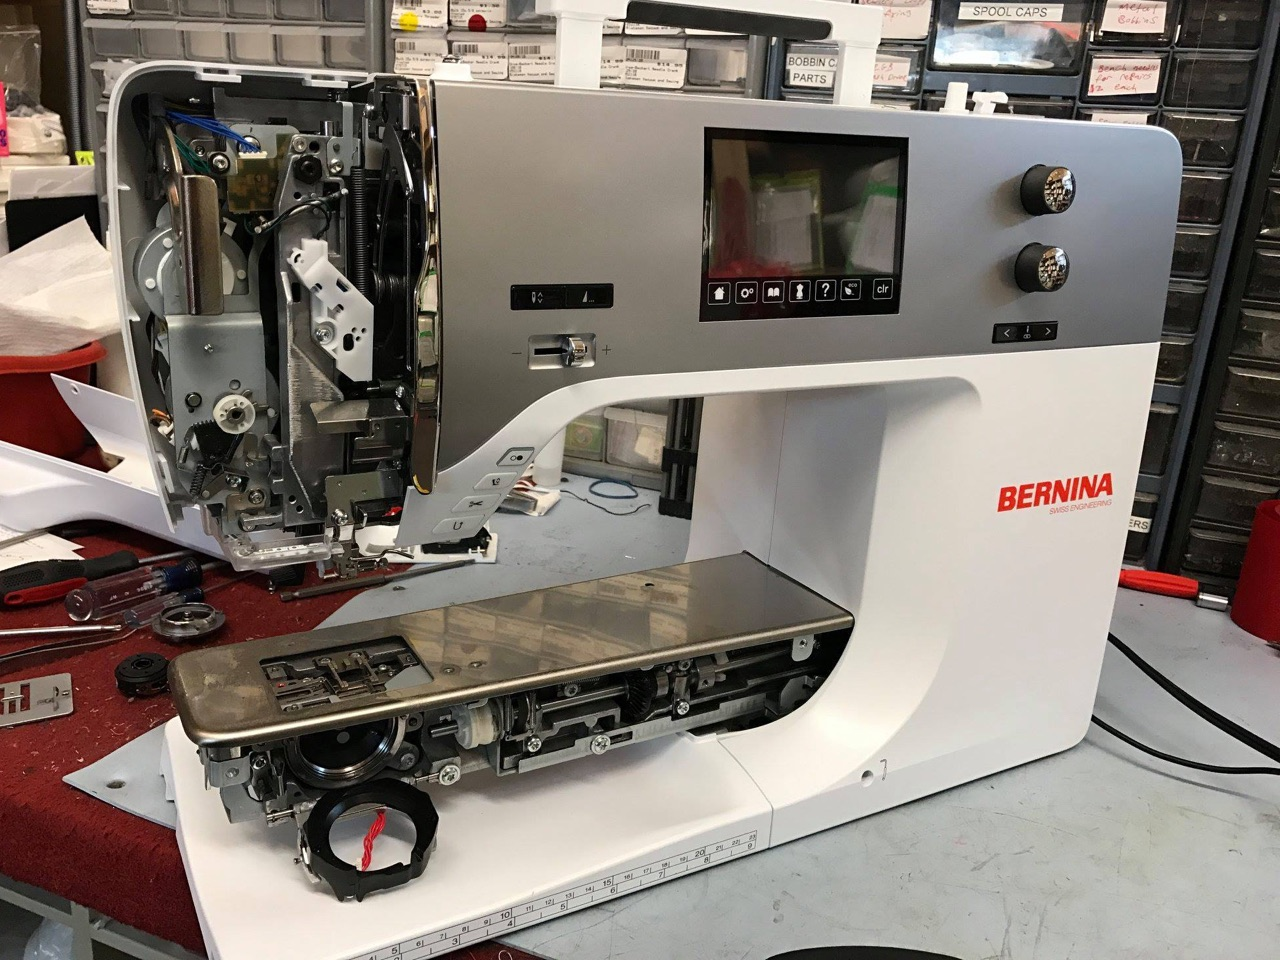 Bernina sewing machine being repaired